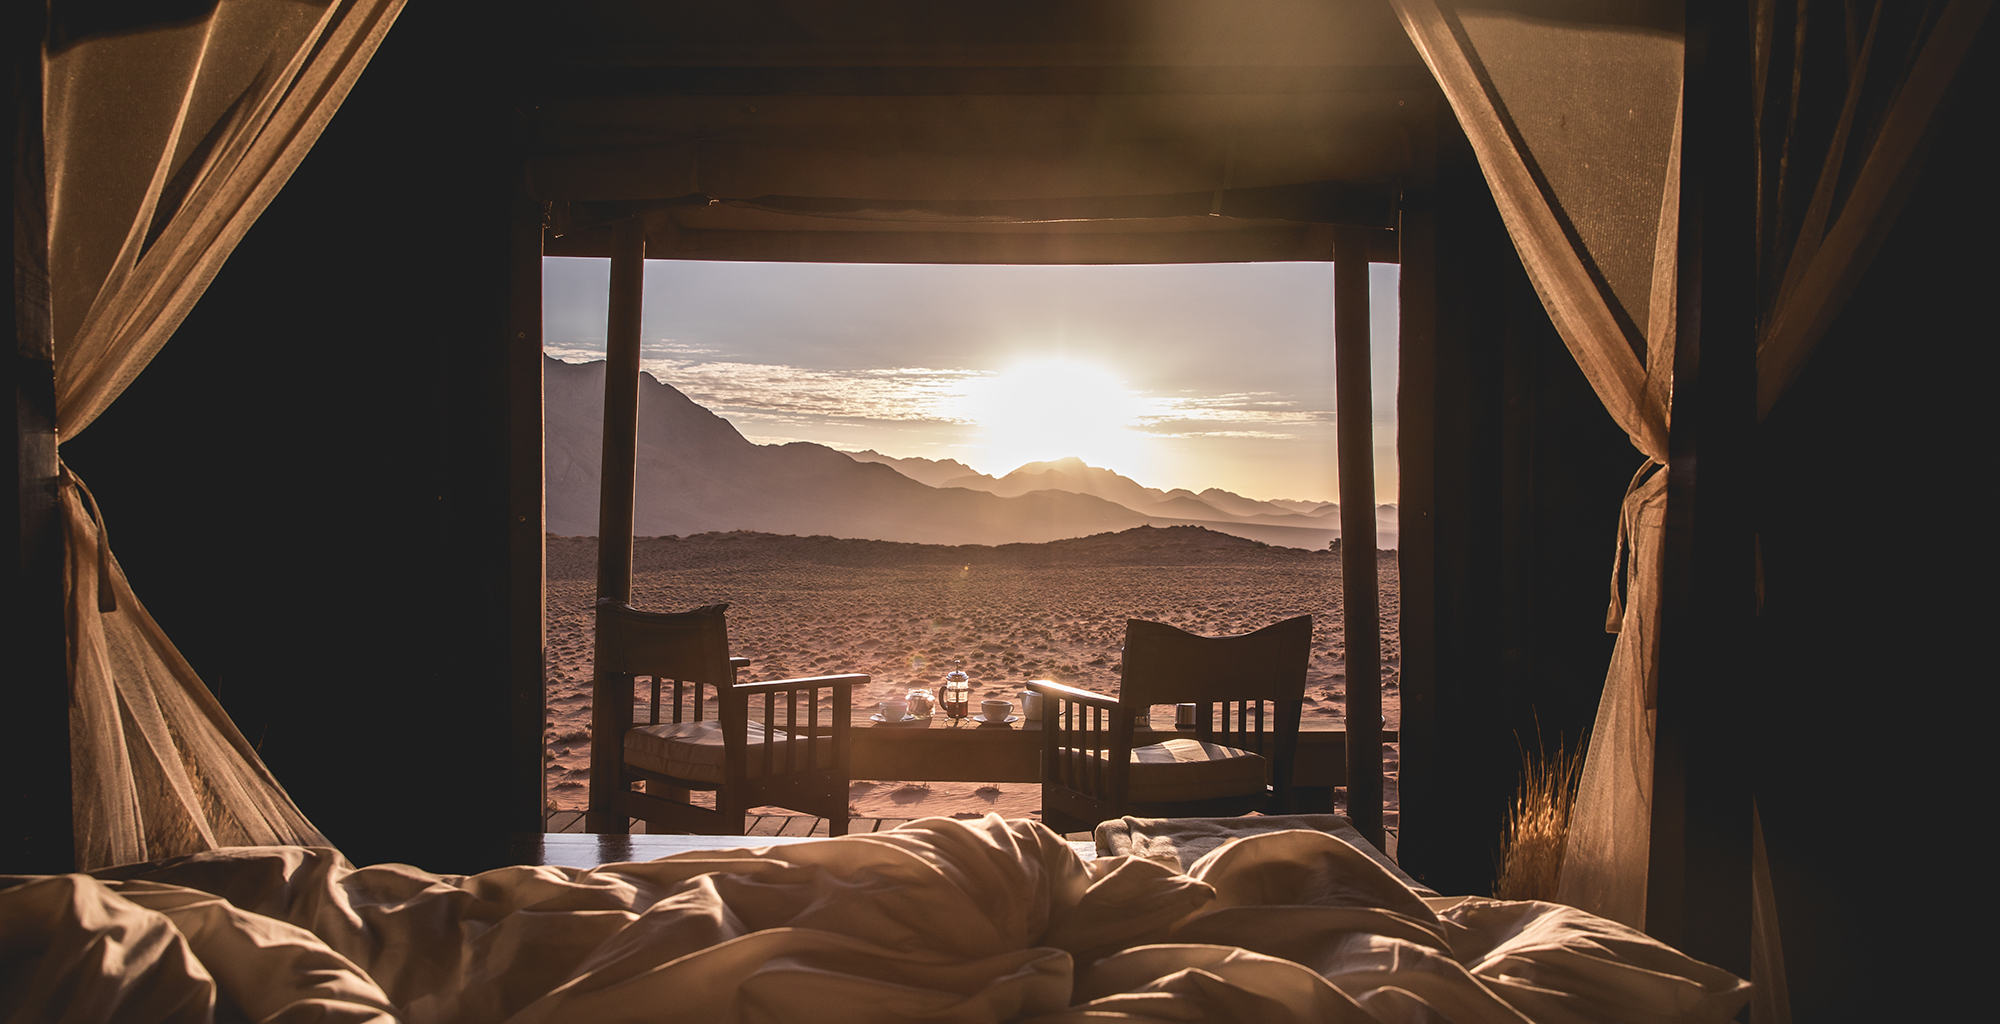 Namibia-Wolwedans-Dune-Camp-Bed-View